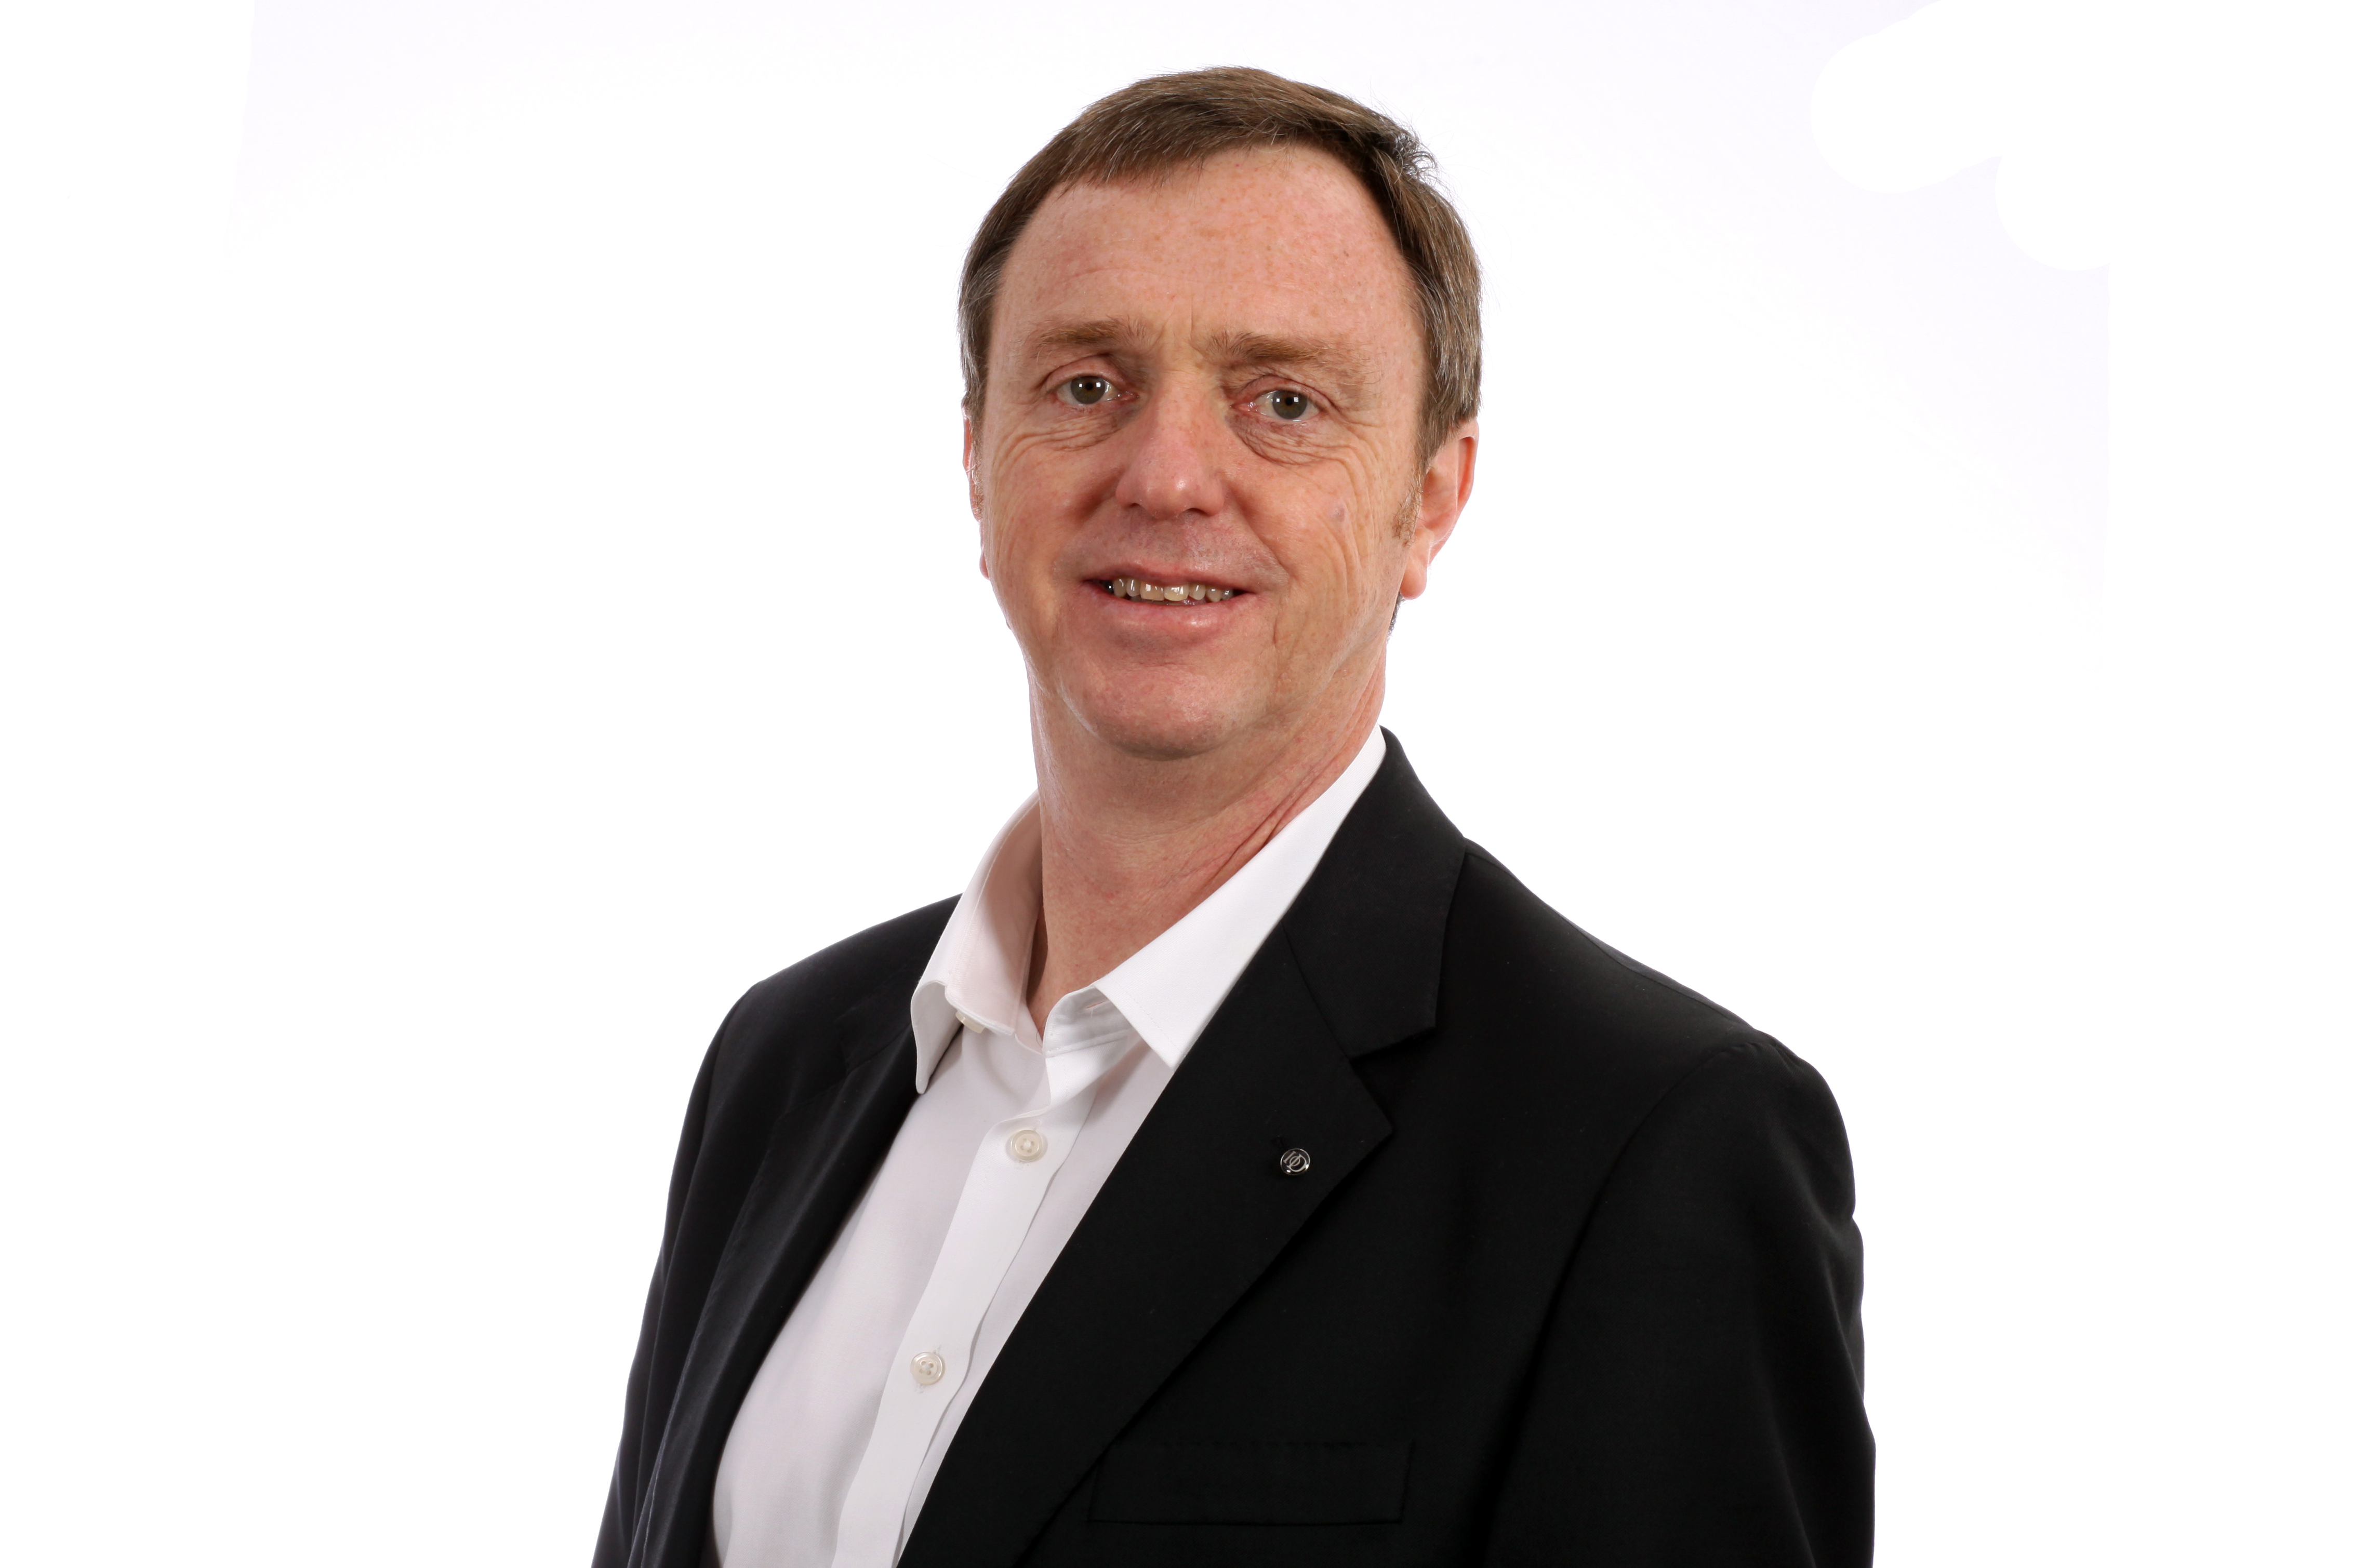 Guy Whitcroft, interim CEO at Westcon-Comstor.